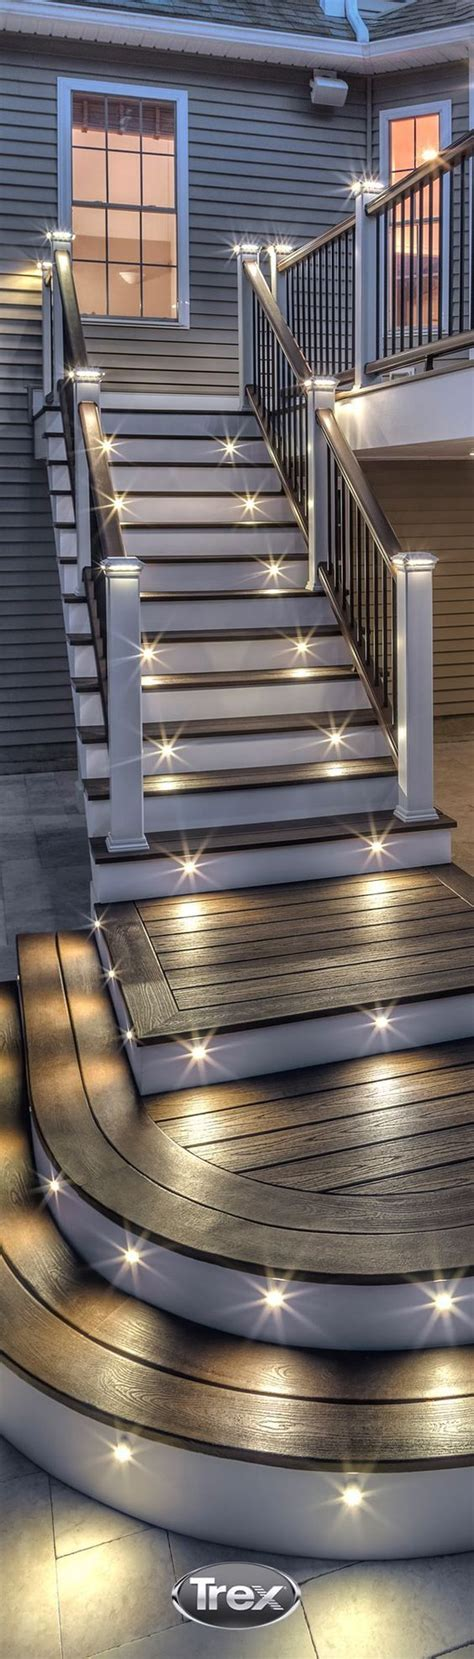 Outdoor Stairway Lighting 25 Best Ideas About Stair Lighting On Pinterest Led Stair Lights Lights For Stairs And Led